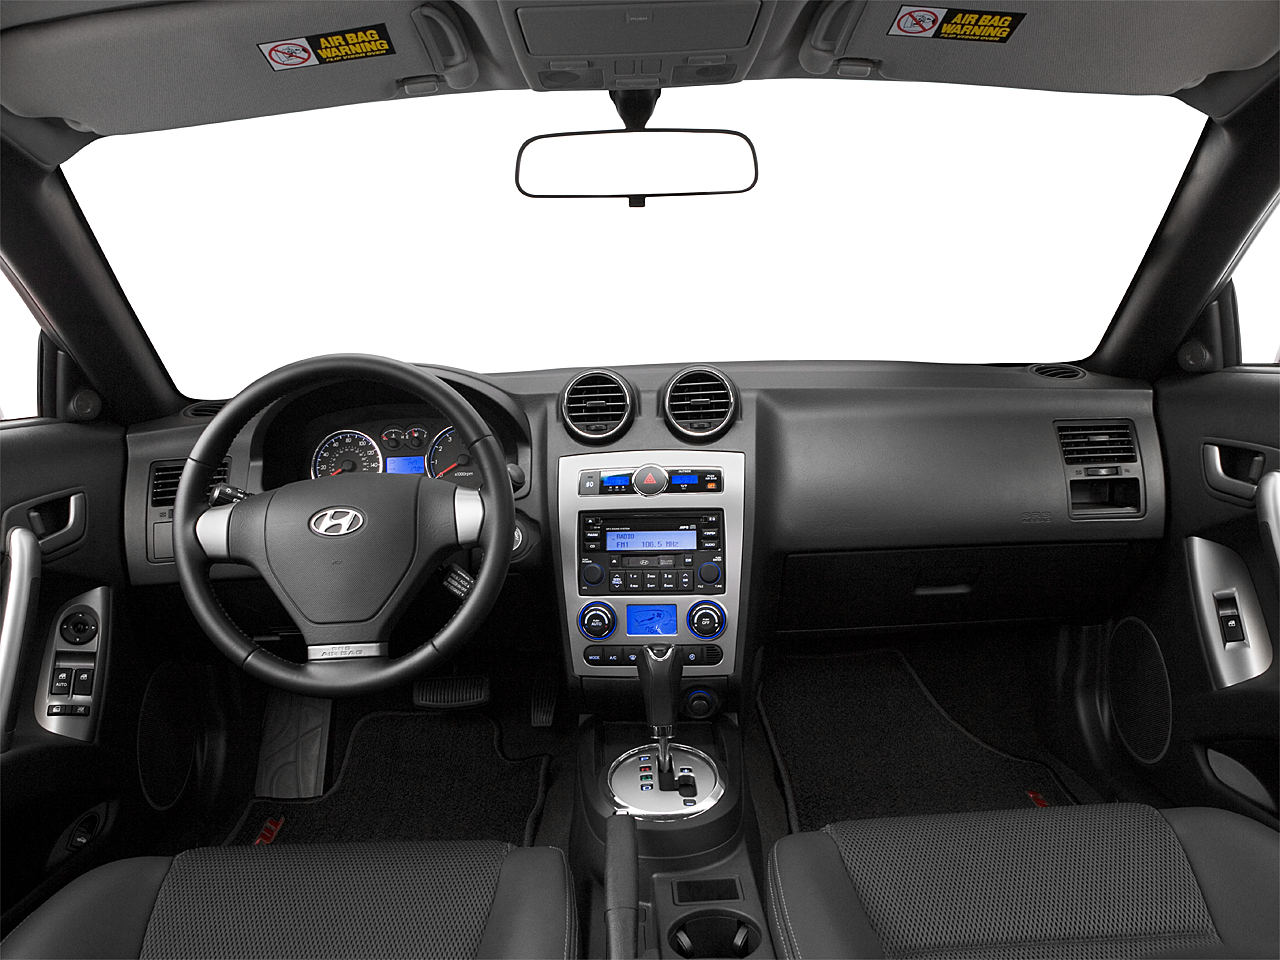 2007 Hyundai Tiburon GT, Centered Wide Dash Shot